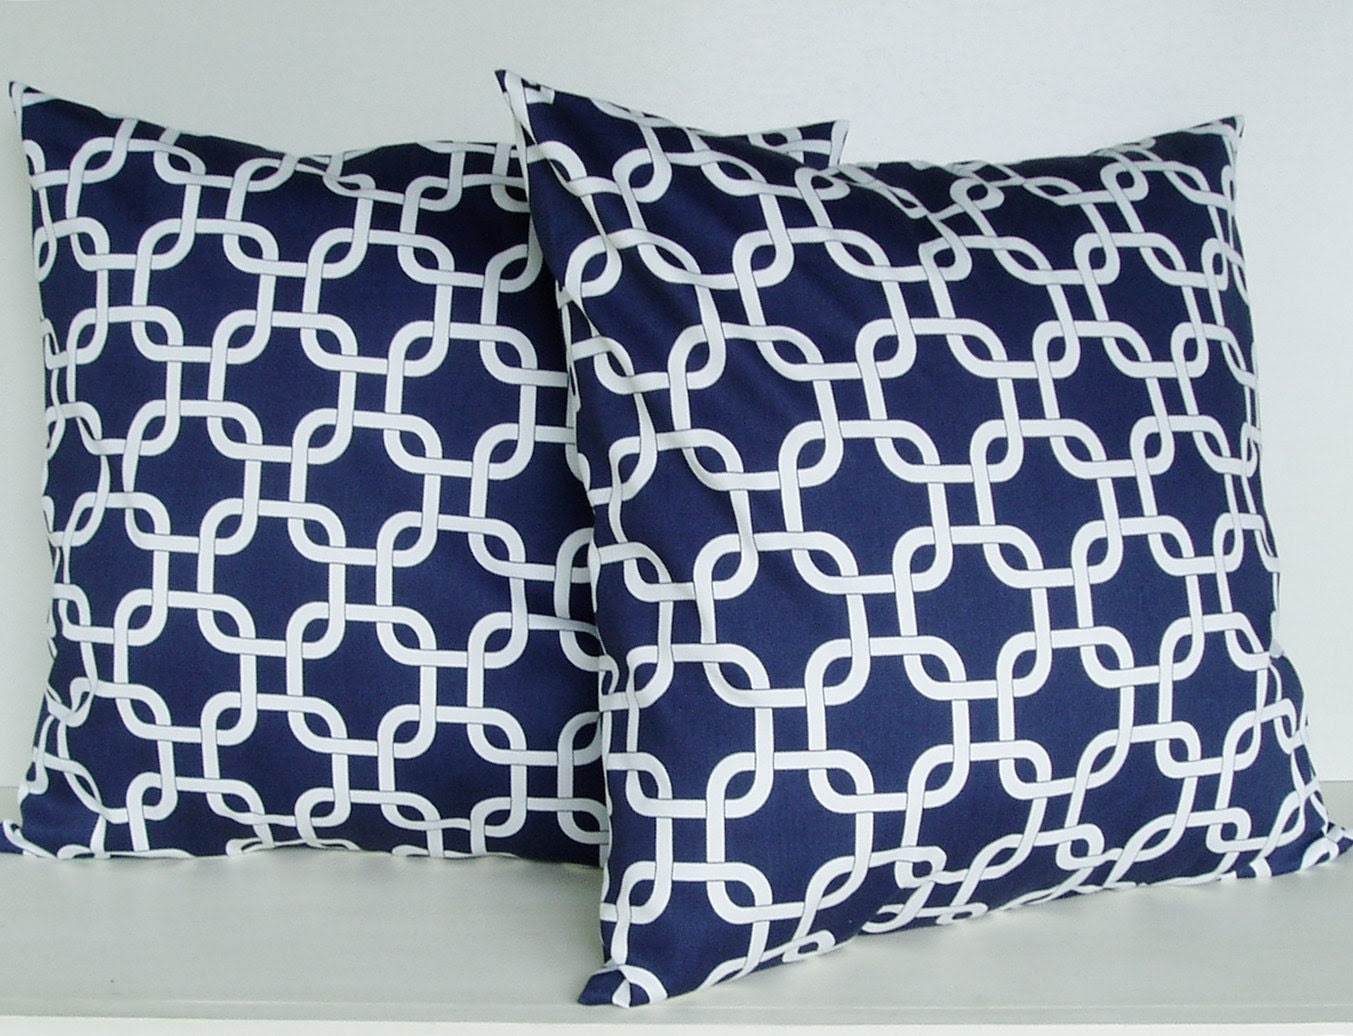 Popular items for navy pillow covers on Etsy